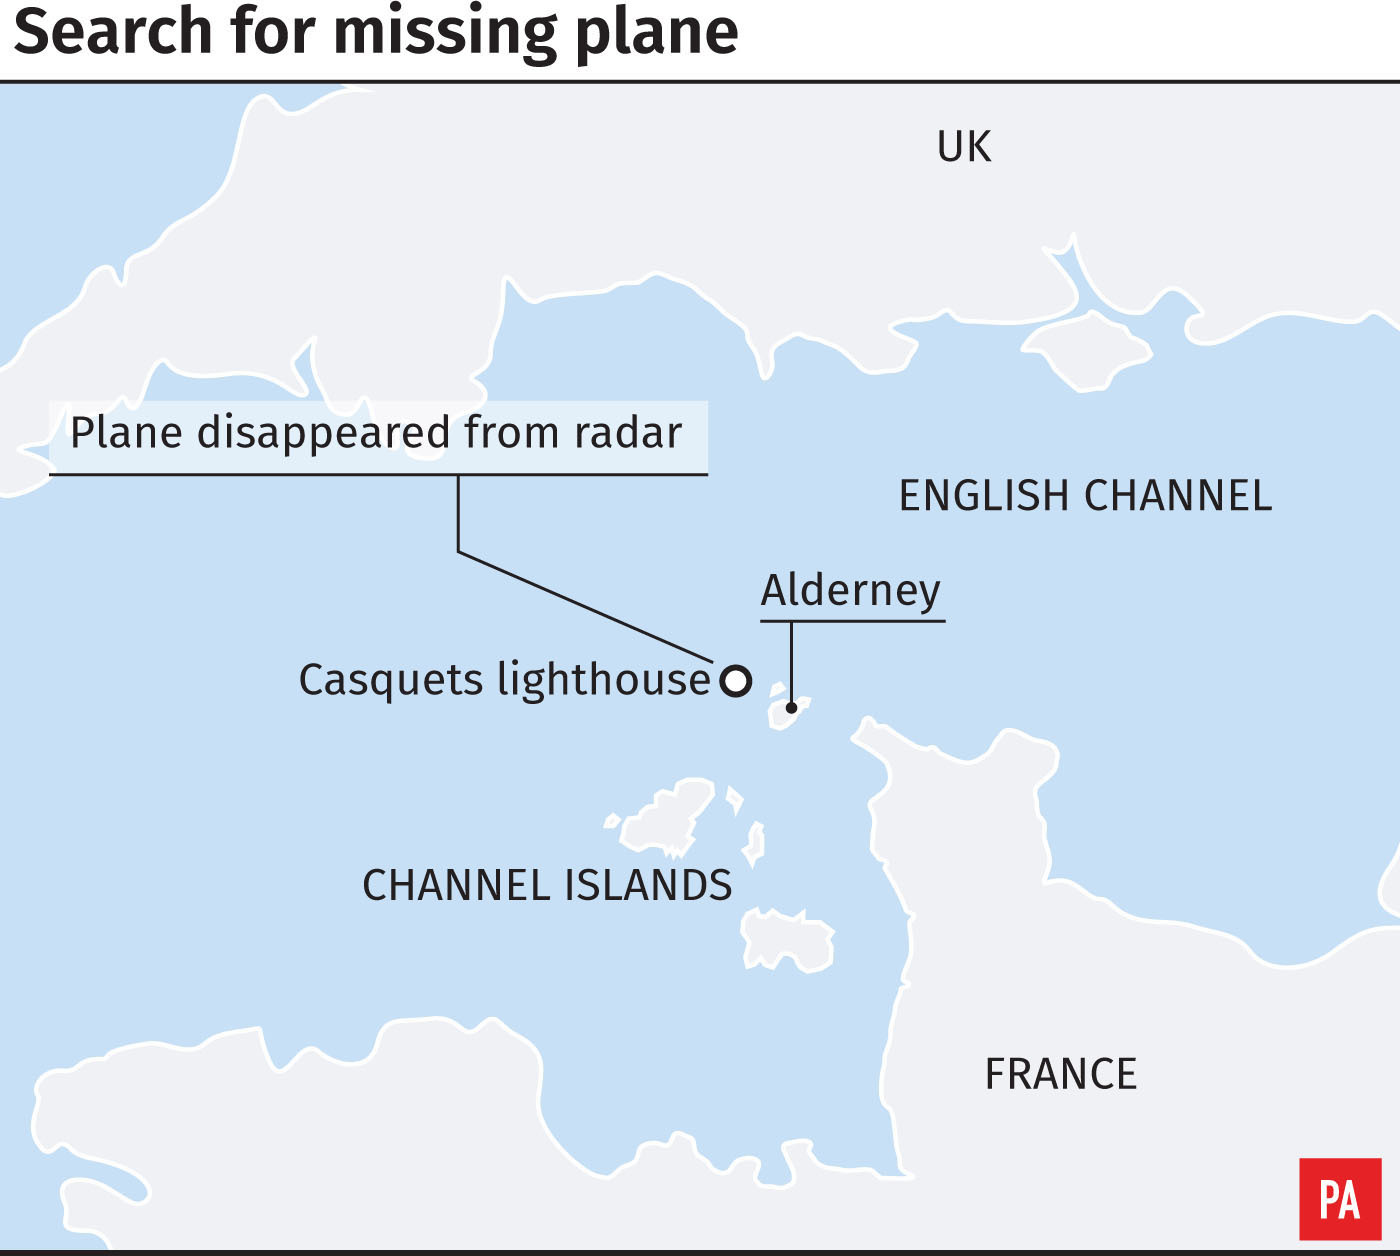 Graphic locates search for a missing aircraft near Alderney in the Channel Islands